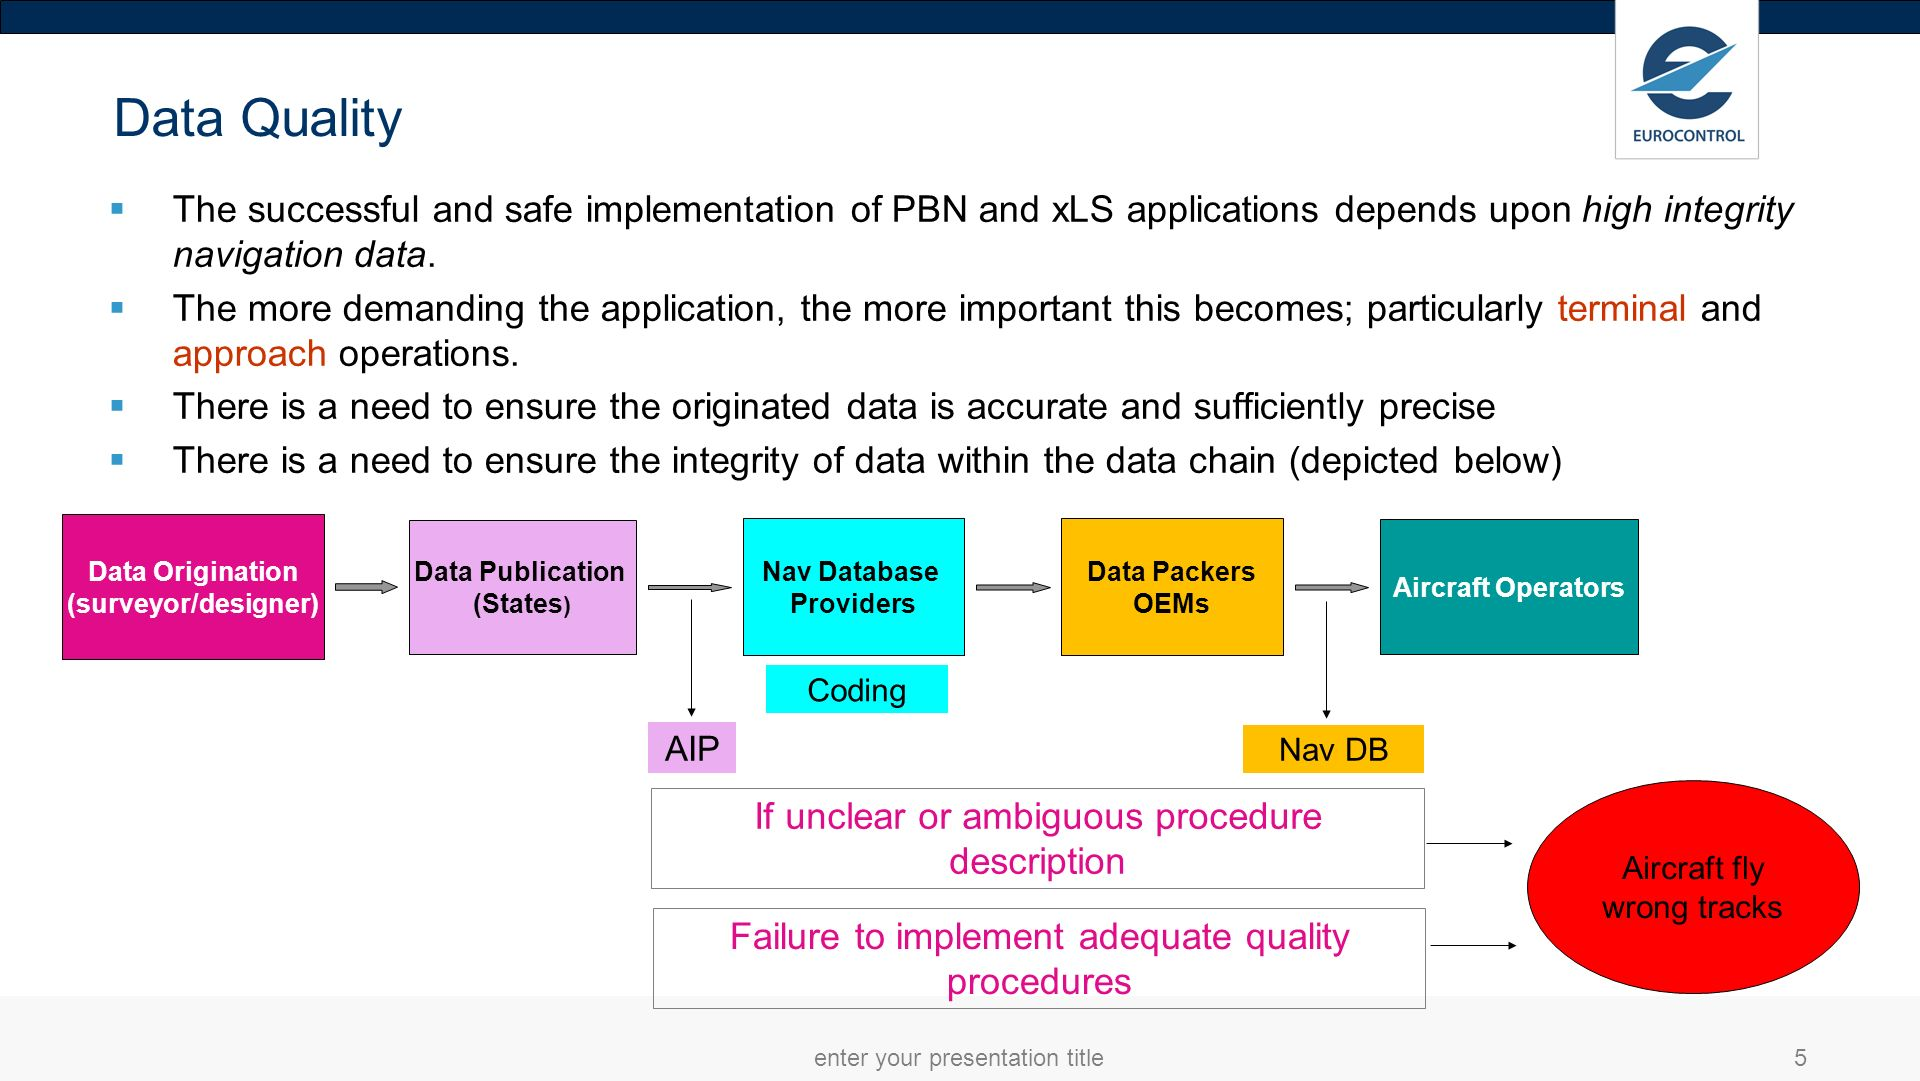 Data Quality The successful and safe implementation of PBN and xLS applications depends upon high integrity navigation data.